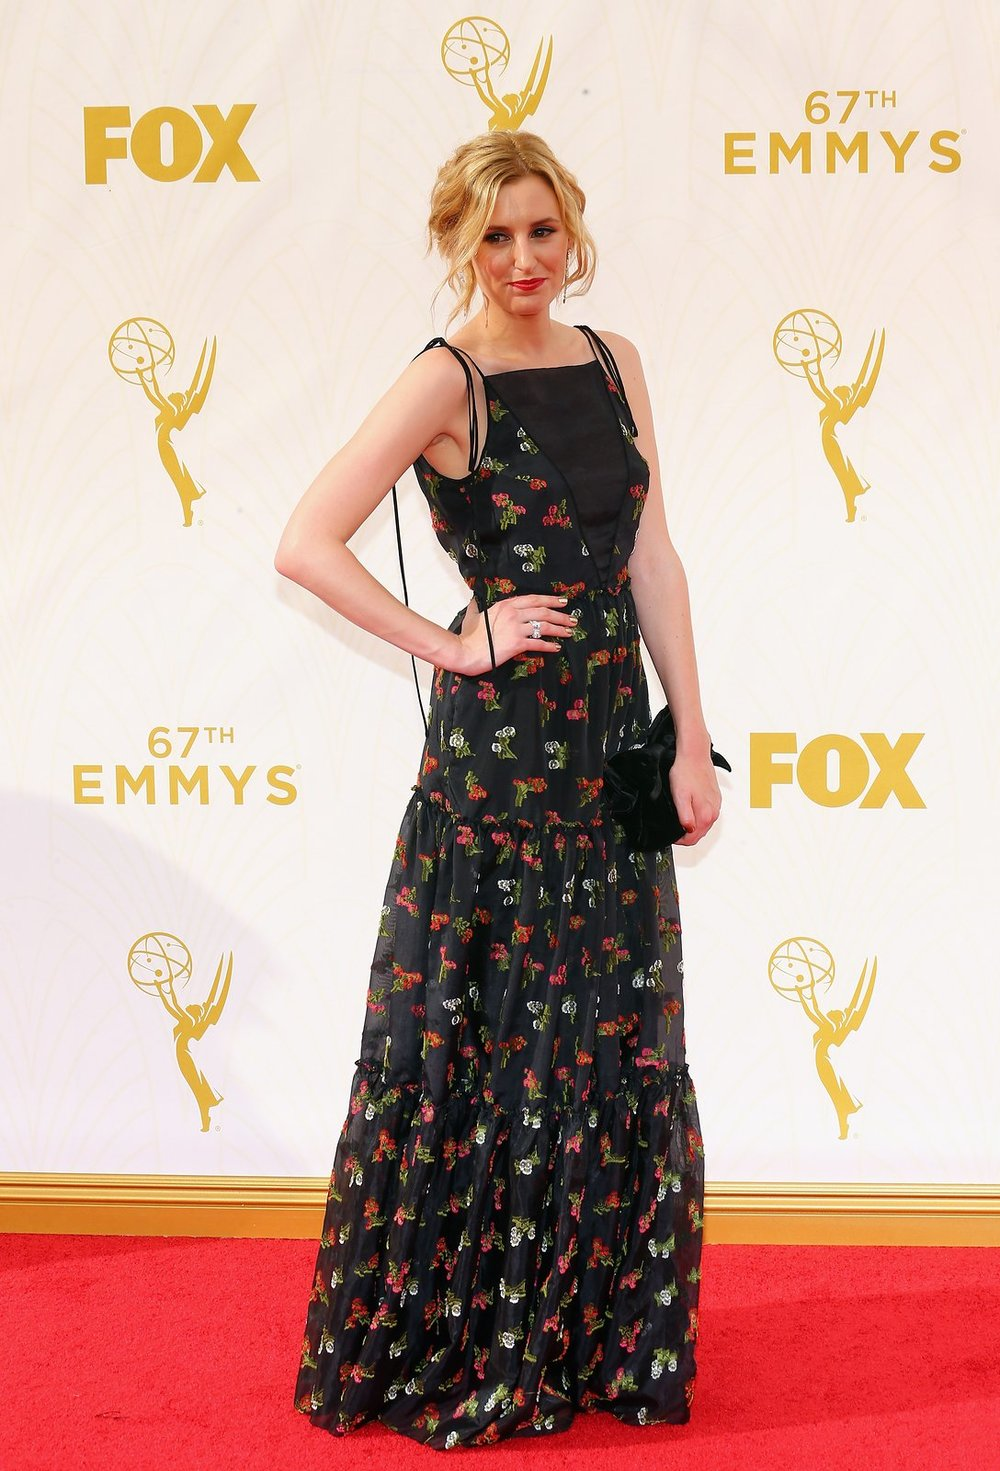 laura-carmichael-emmys-red-carpet-2015.jpg